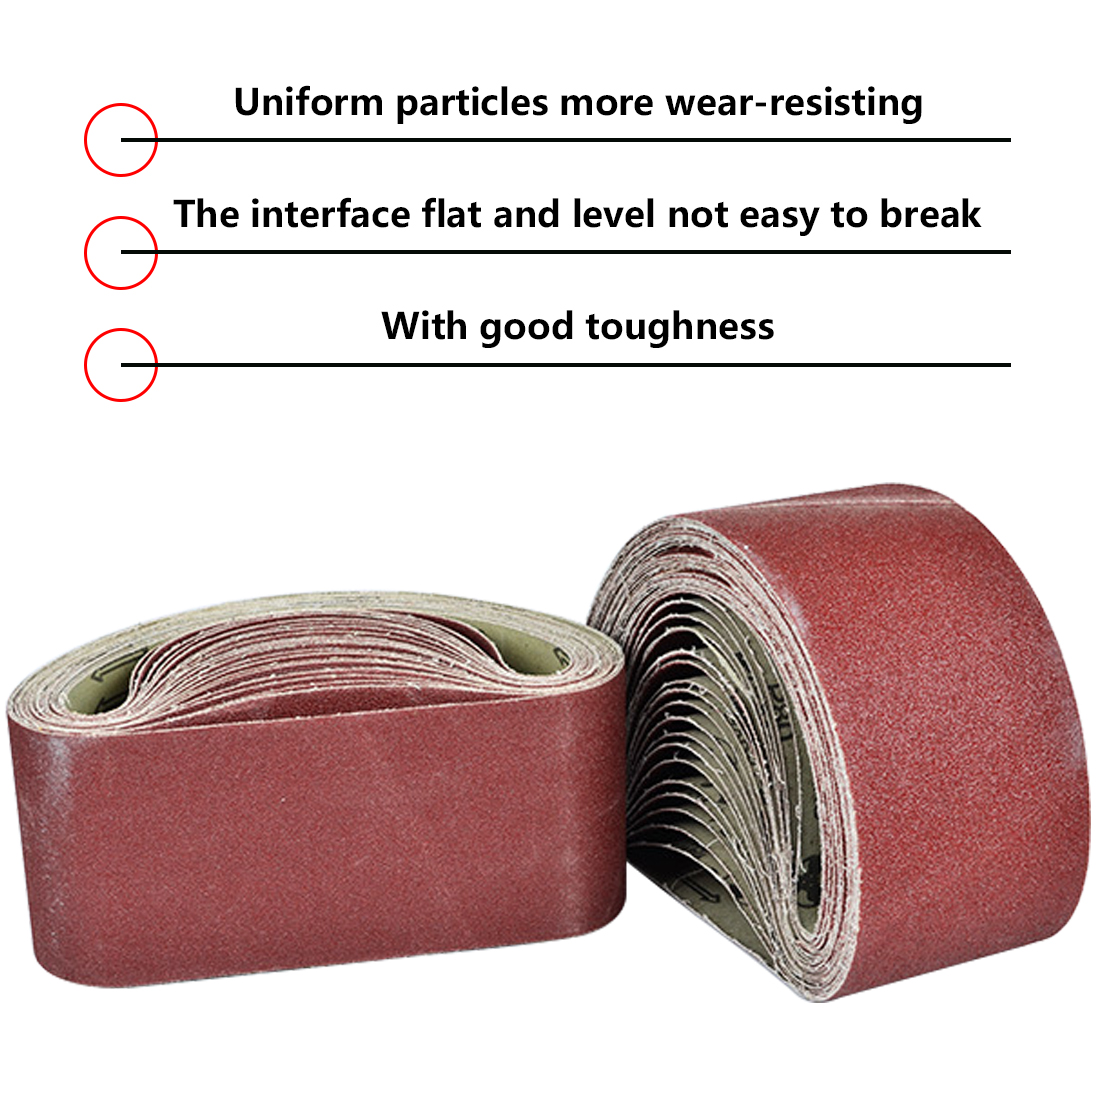 Sanding Belts 533x75mm 80-320 Grits Sandpaper Abrasive Bands For Sander Power Rotary Tools Dremel Accessories Abrasive Tool